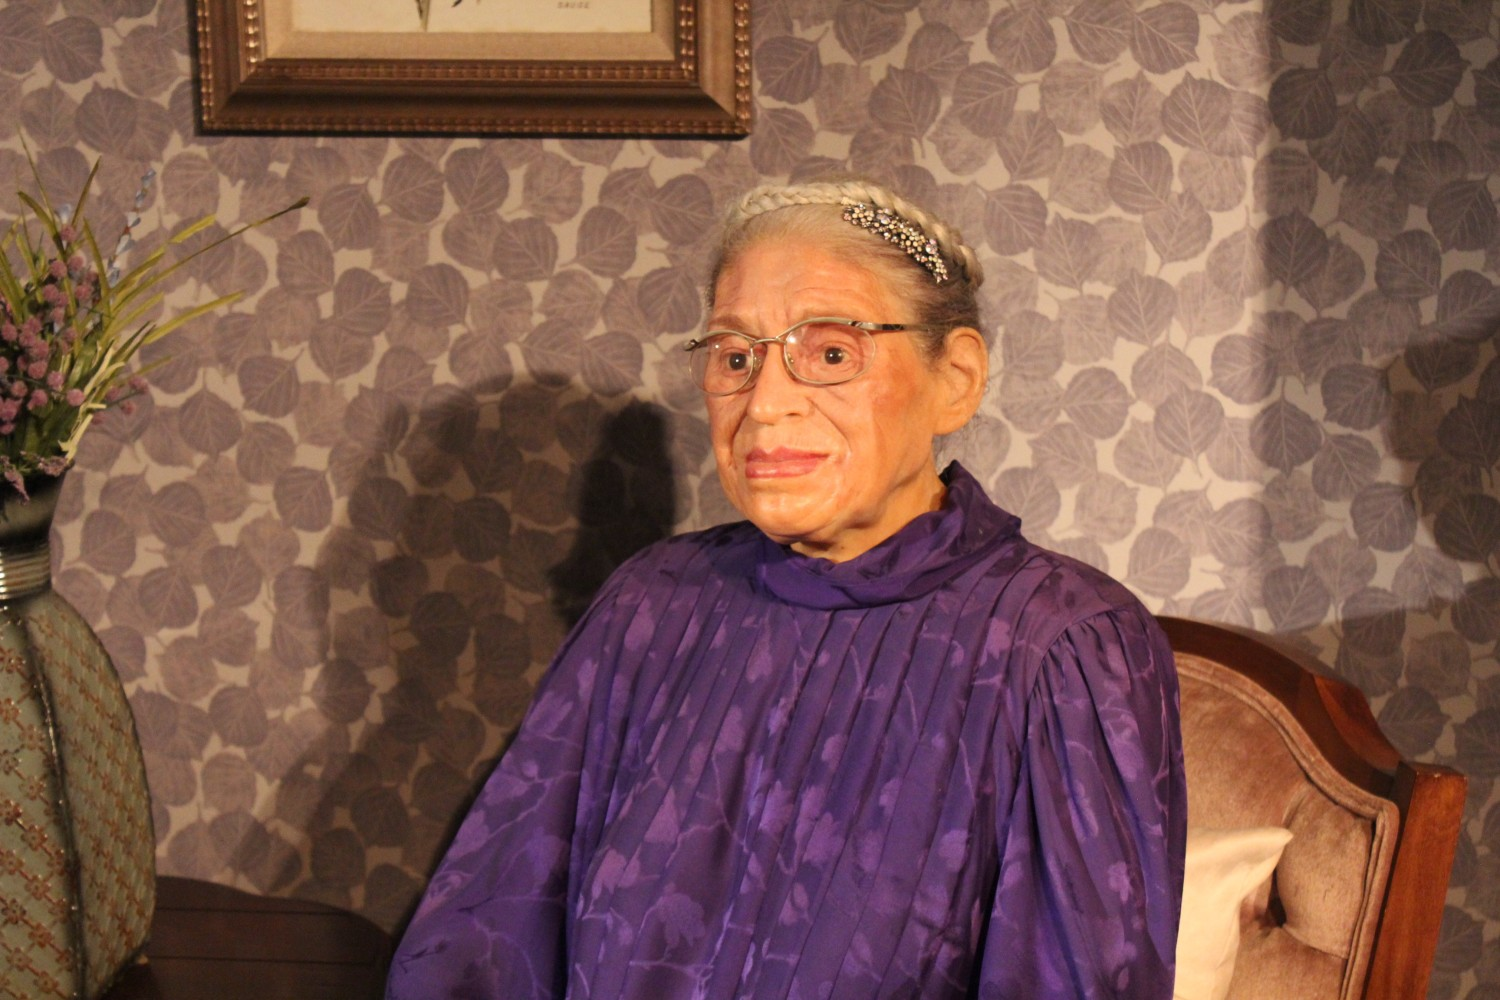 Madame Tussauds Washington D.C. Rosa Parks